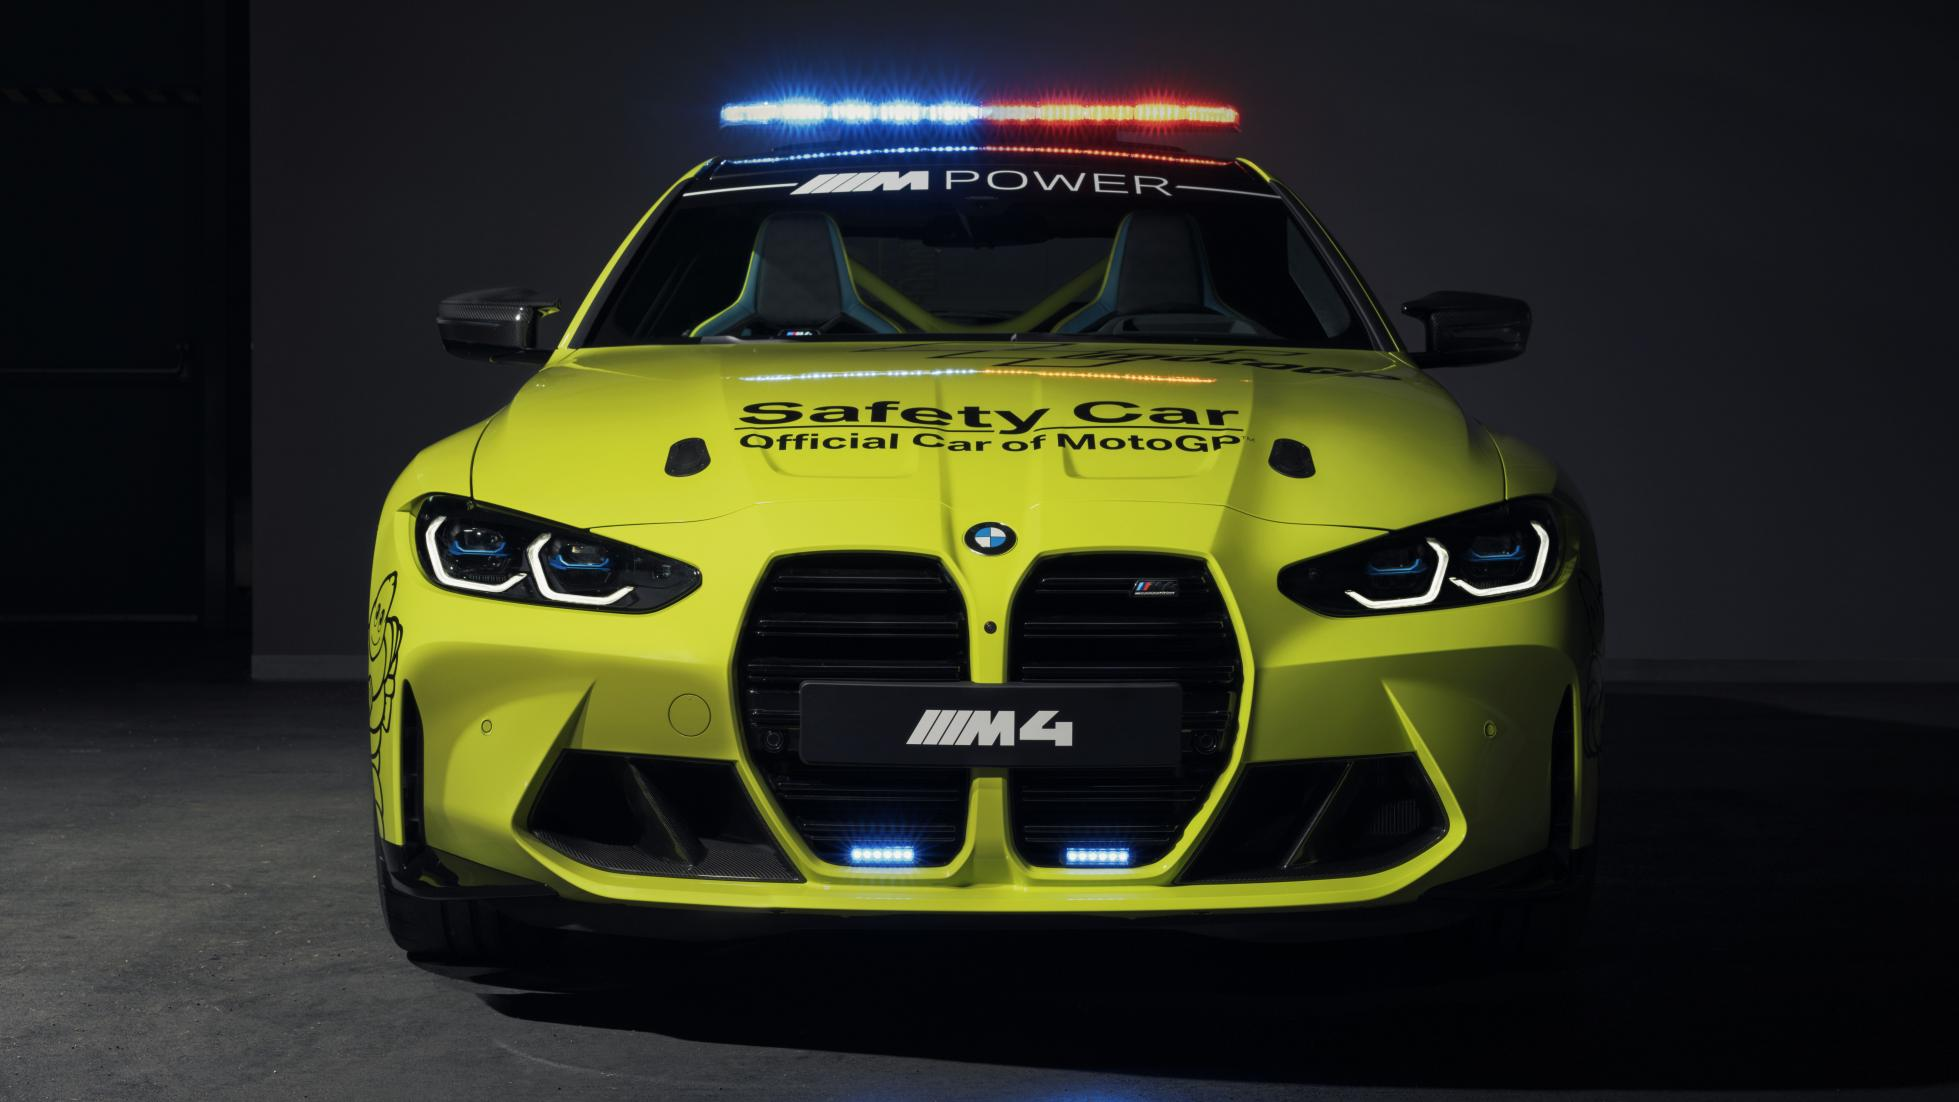 The BMW M4 as a MotoGP safety car